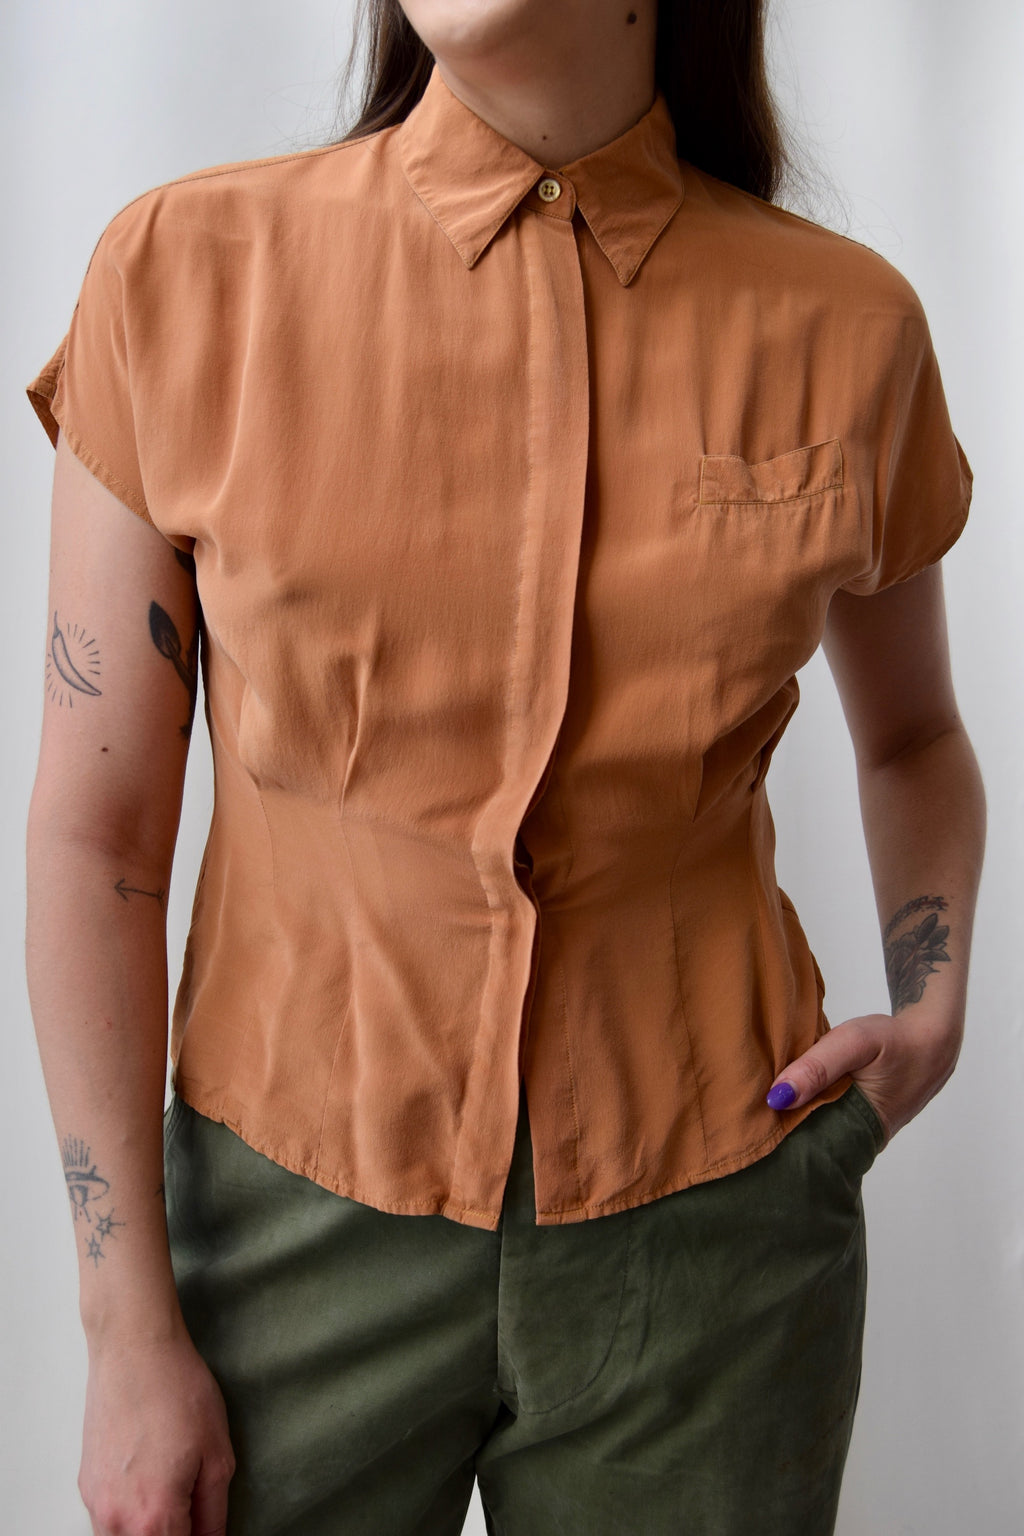 Bronze Silk Blouse FREE SHIPPING TO THE UNITED STATES